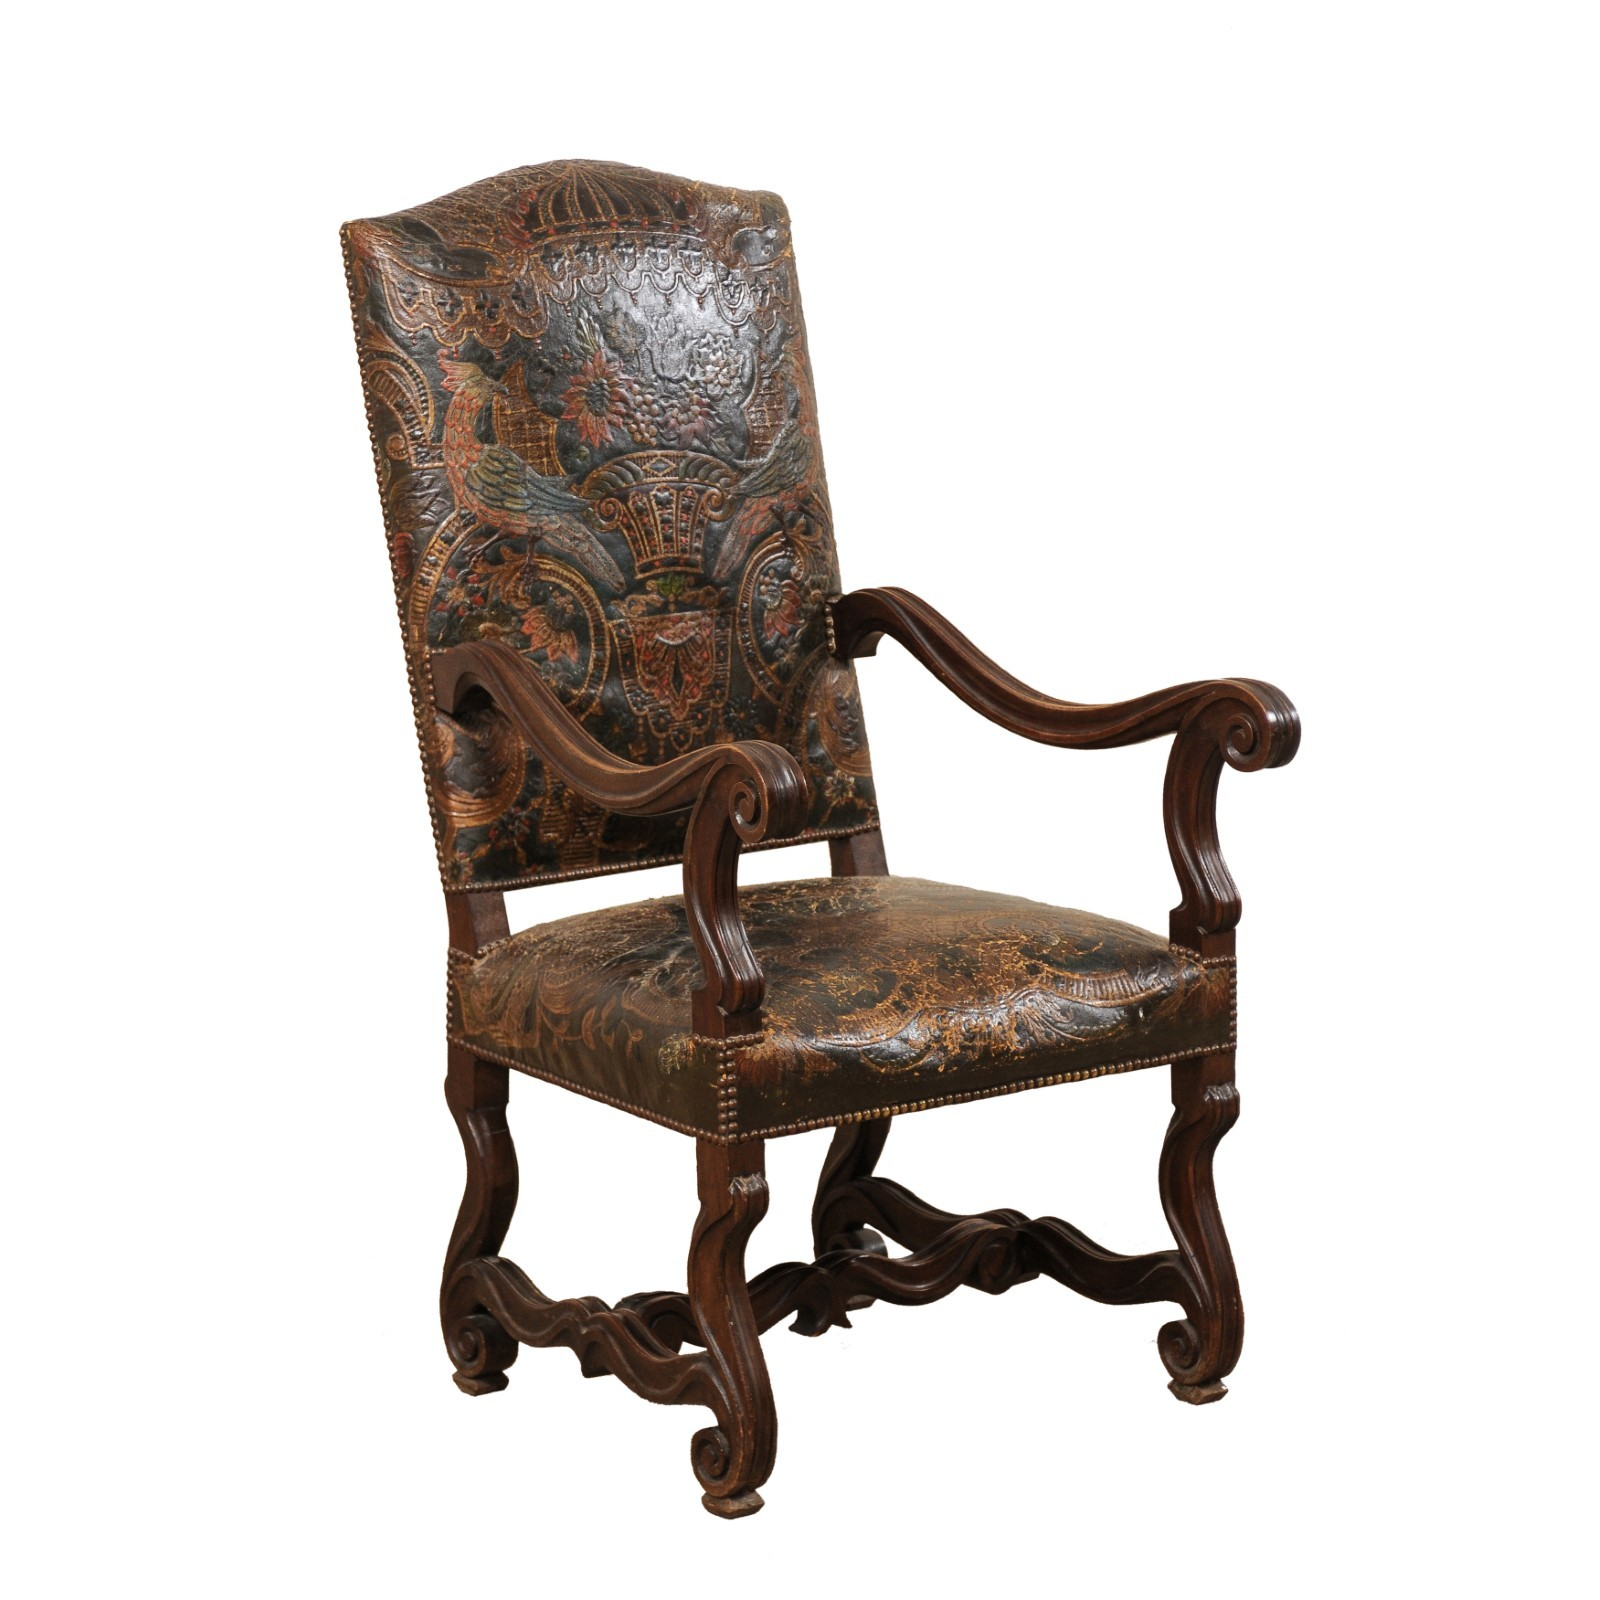 Embossed Leather & Carved Wood Chair, Italy